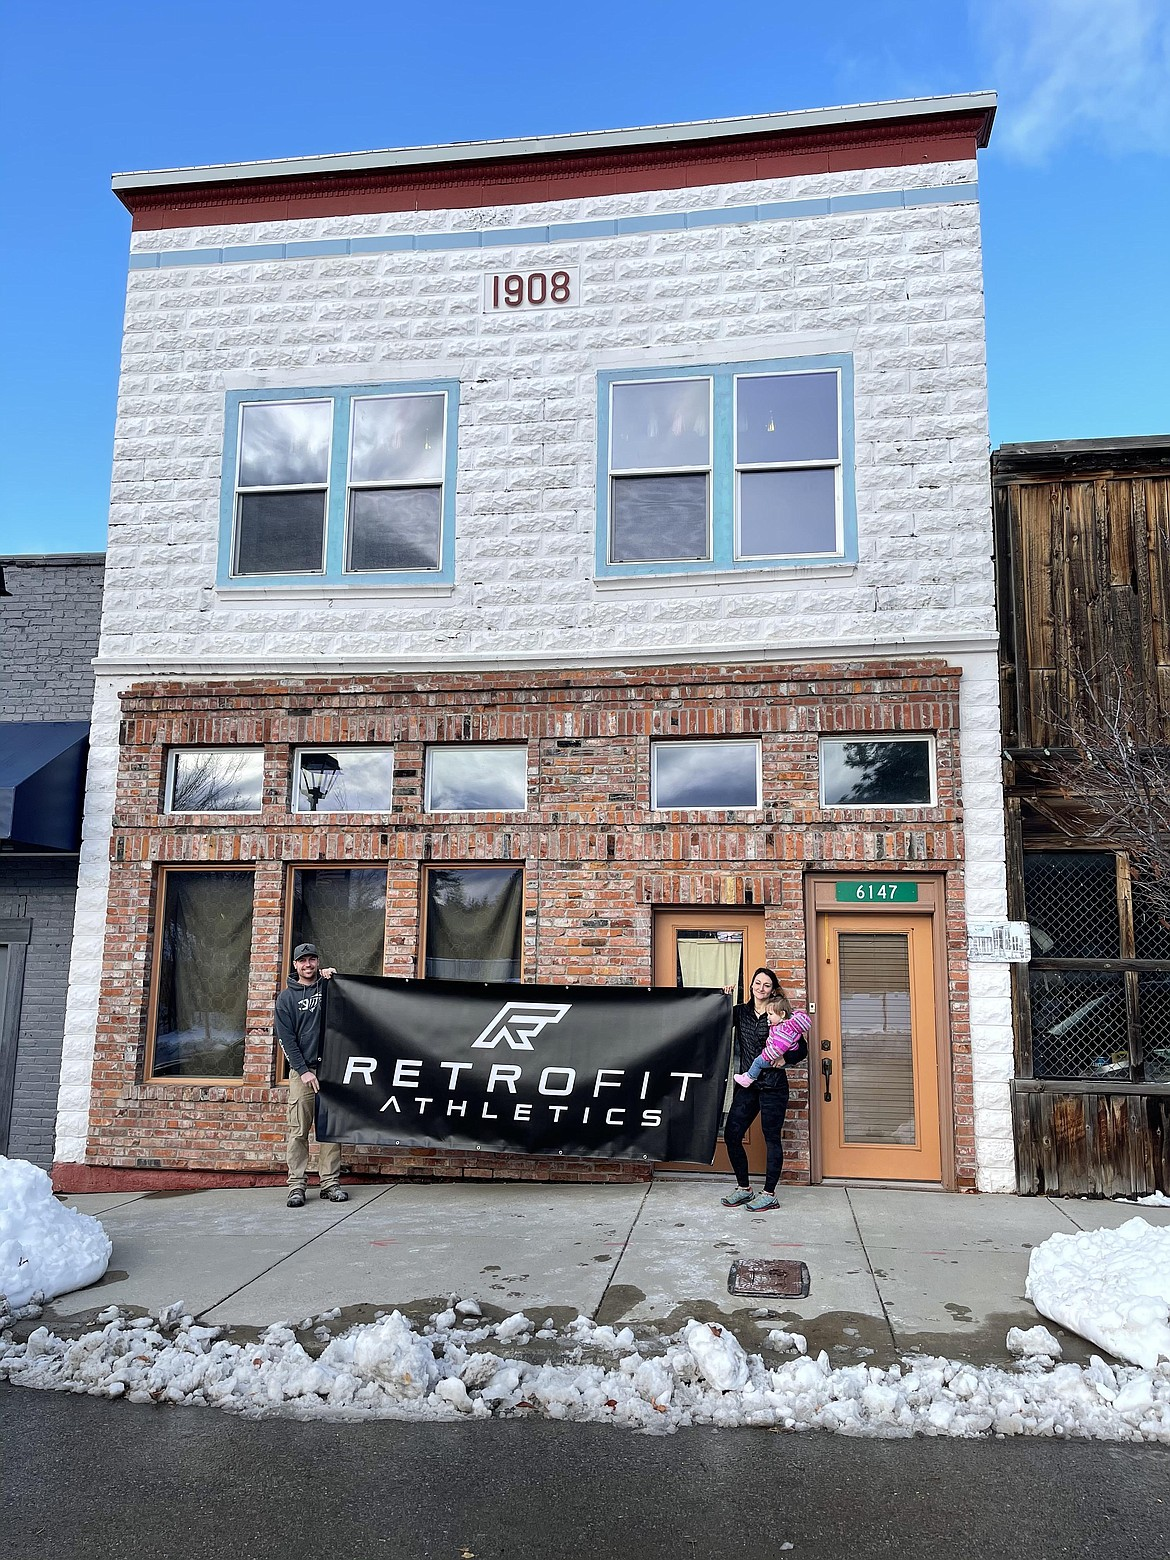 Courtesy photo Tyler and Meghan Mitchell (with daughter Blakely) of Retrofit Athletics, which has opened at 6147 W. Maine St. in Spirit Lake.